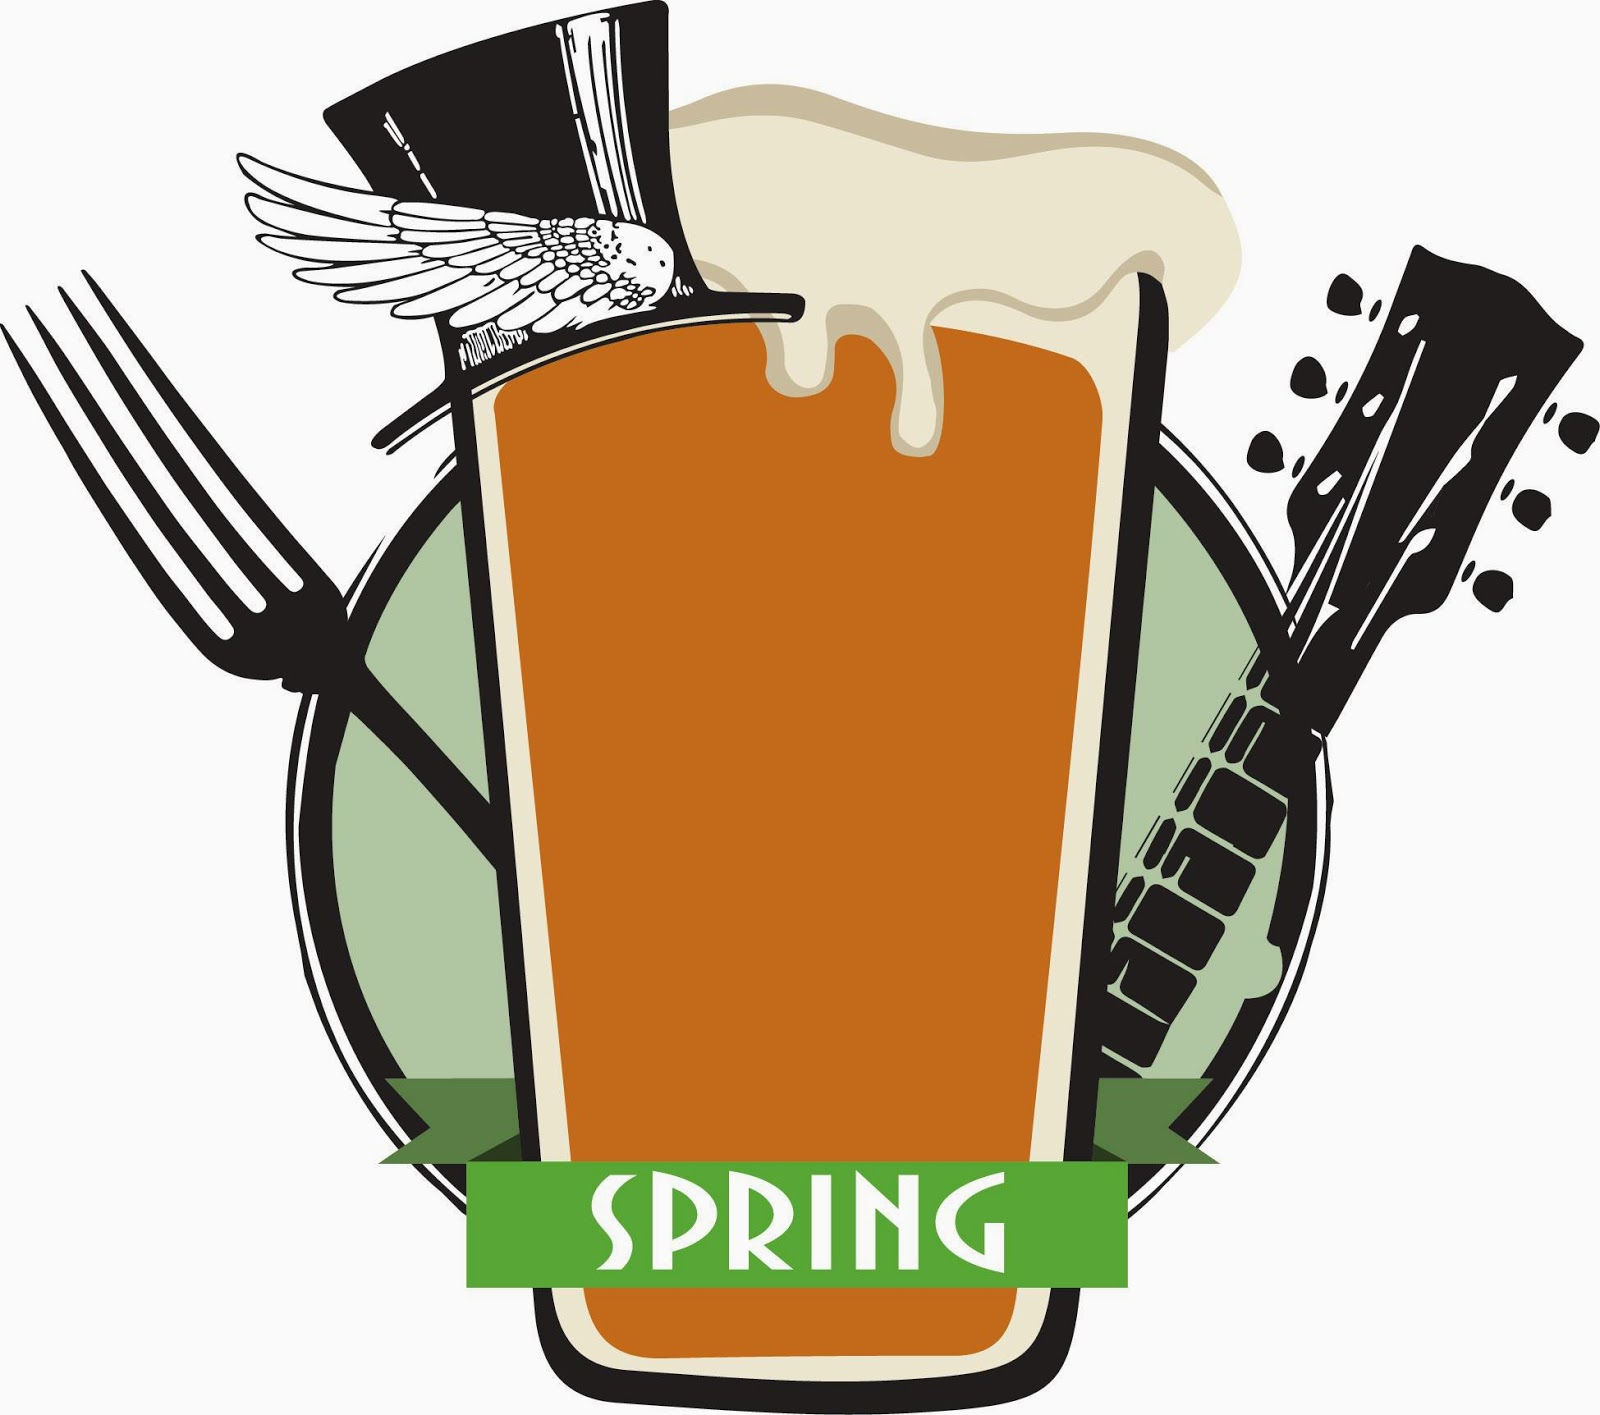 The Top Hat Spring Beer Dinner